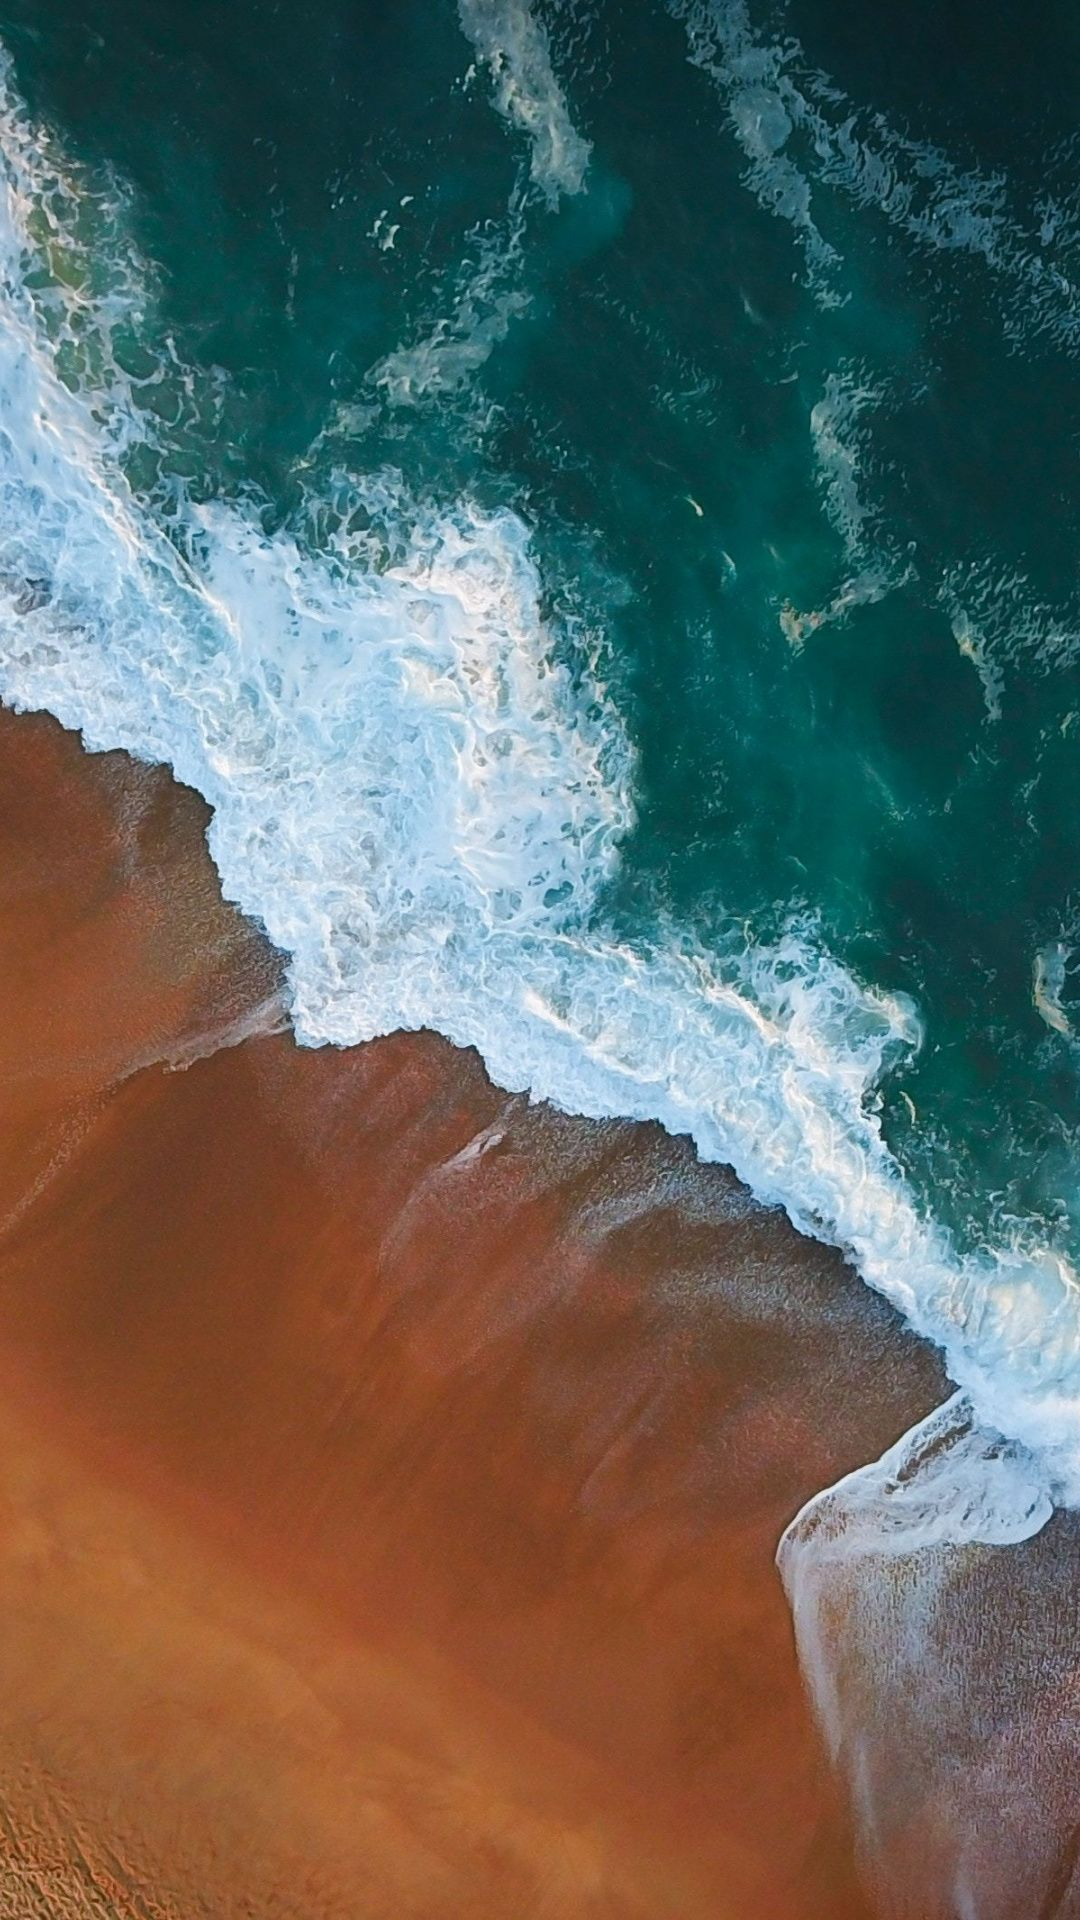 Close Up Sea Waves Body Of Water 1080x1920 Wallpaper Ocean Wallpaper Aesthetic Backgrounds Background Pictures